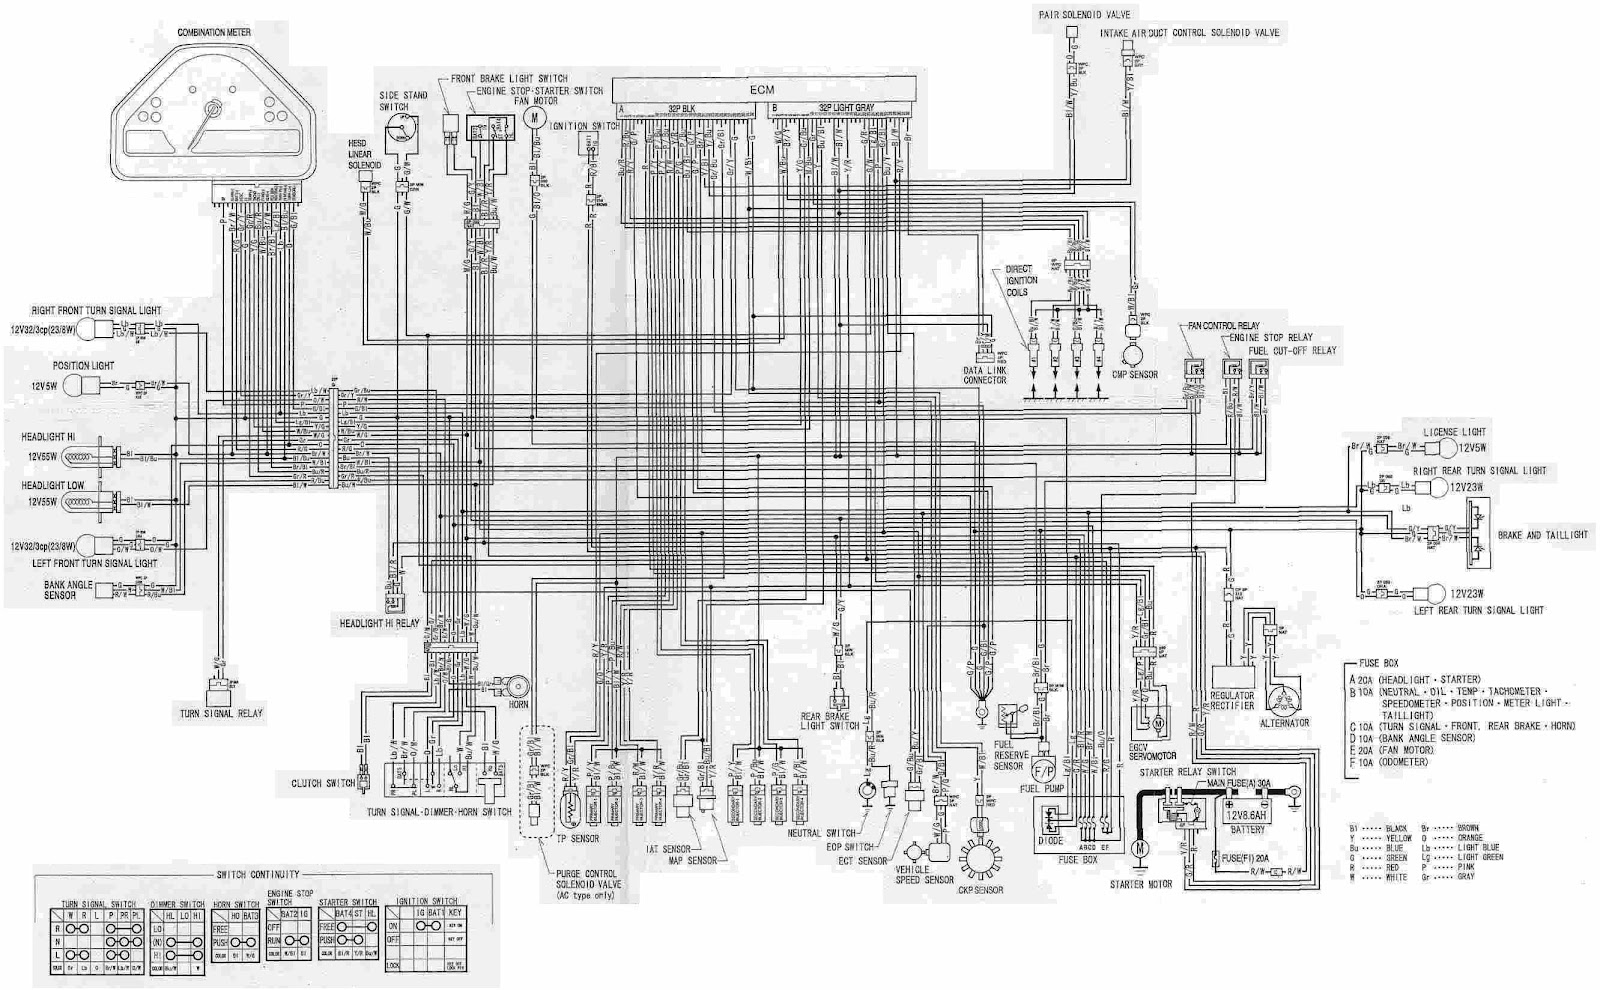 Wiring Diagram Honda City Zx Hid For Motorcycle Fantastic Frieze